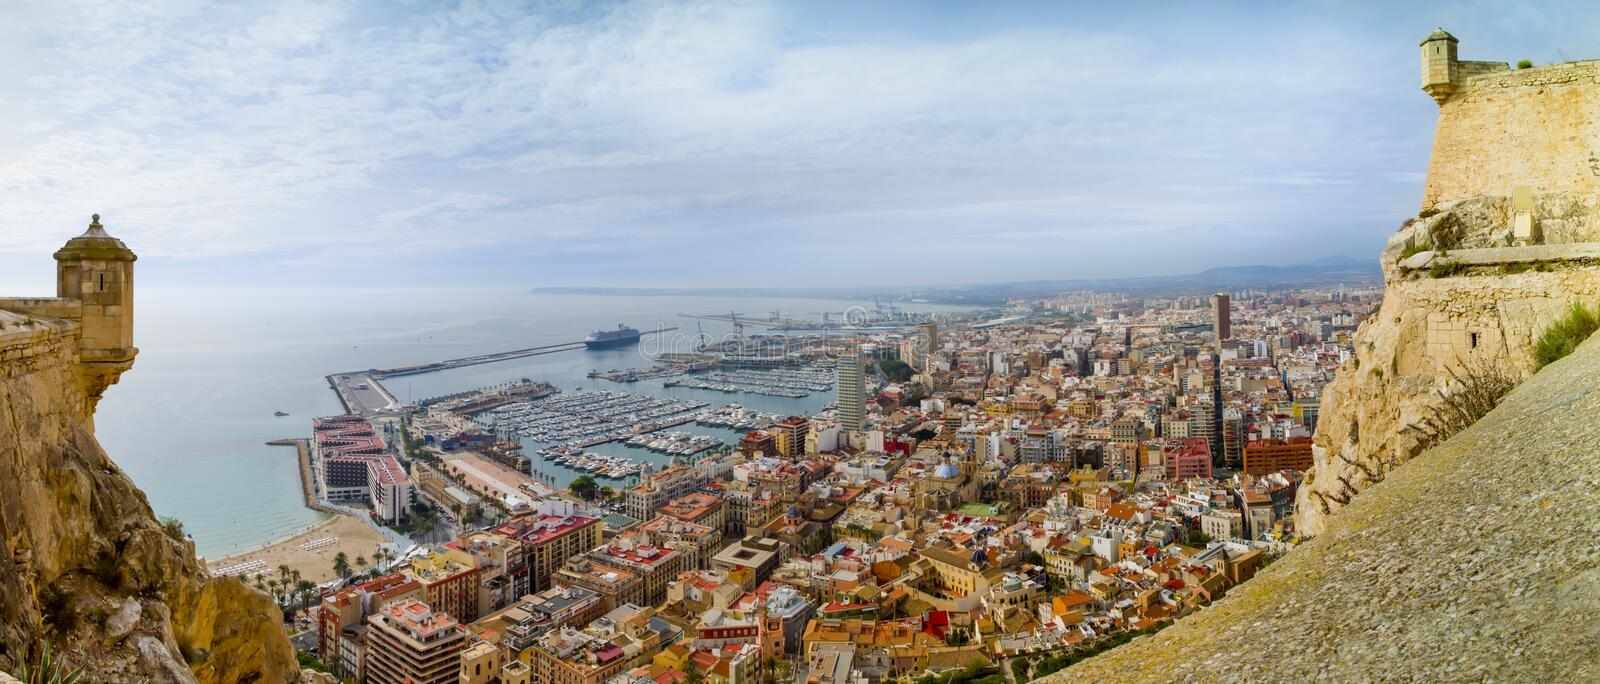 Alicante Through Spanish Castle Royalty Free Stock Image